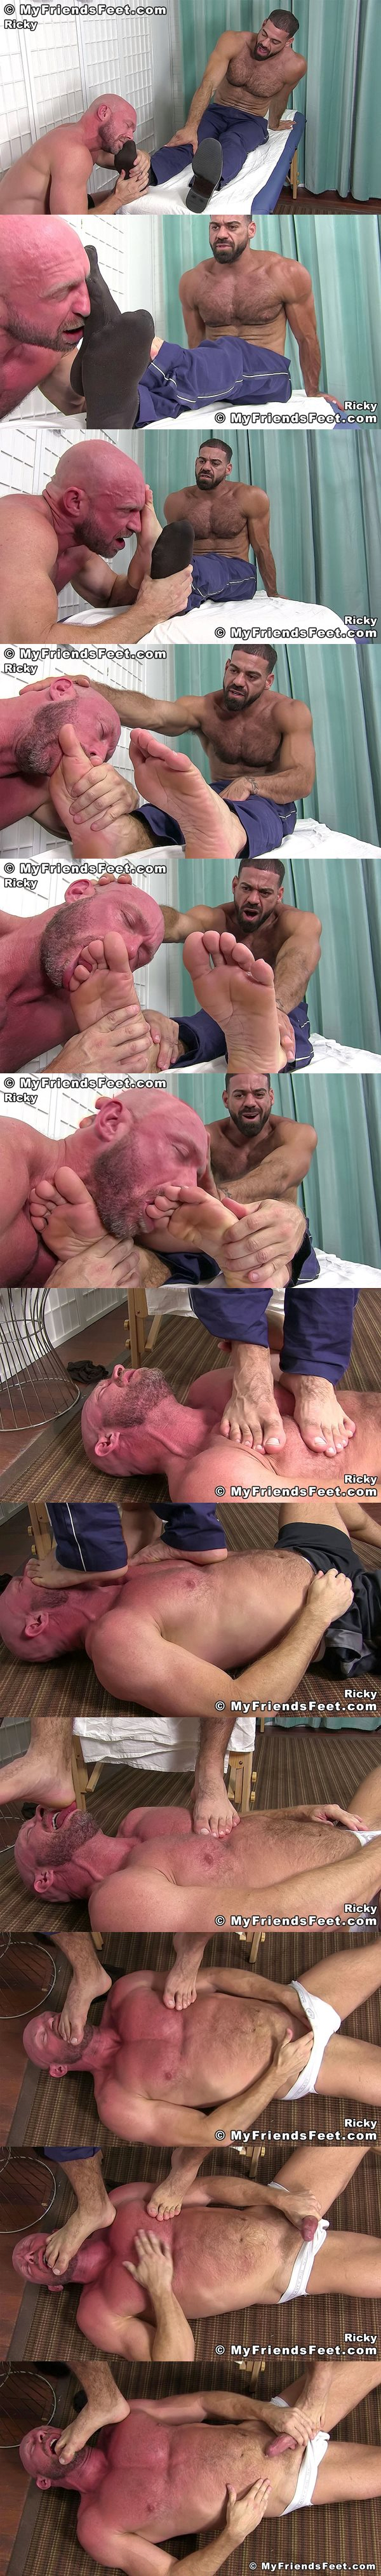 Myfriendsfeet - Killian Knox and Ricky Larkin 03